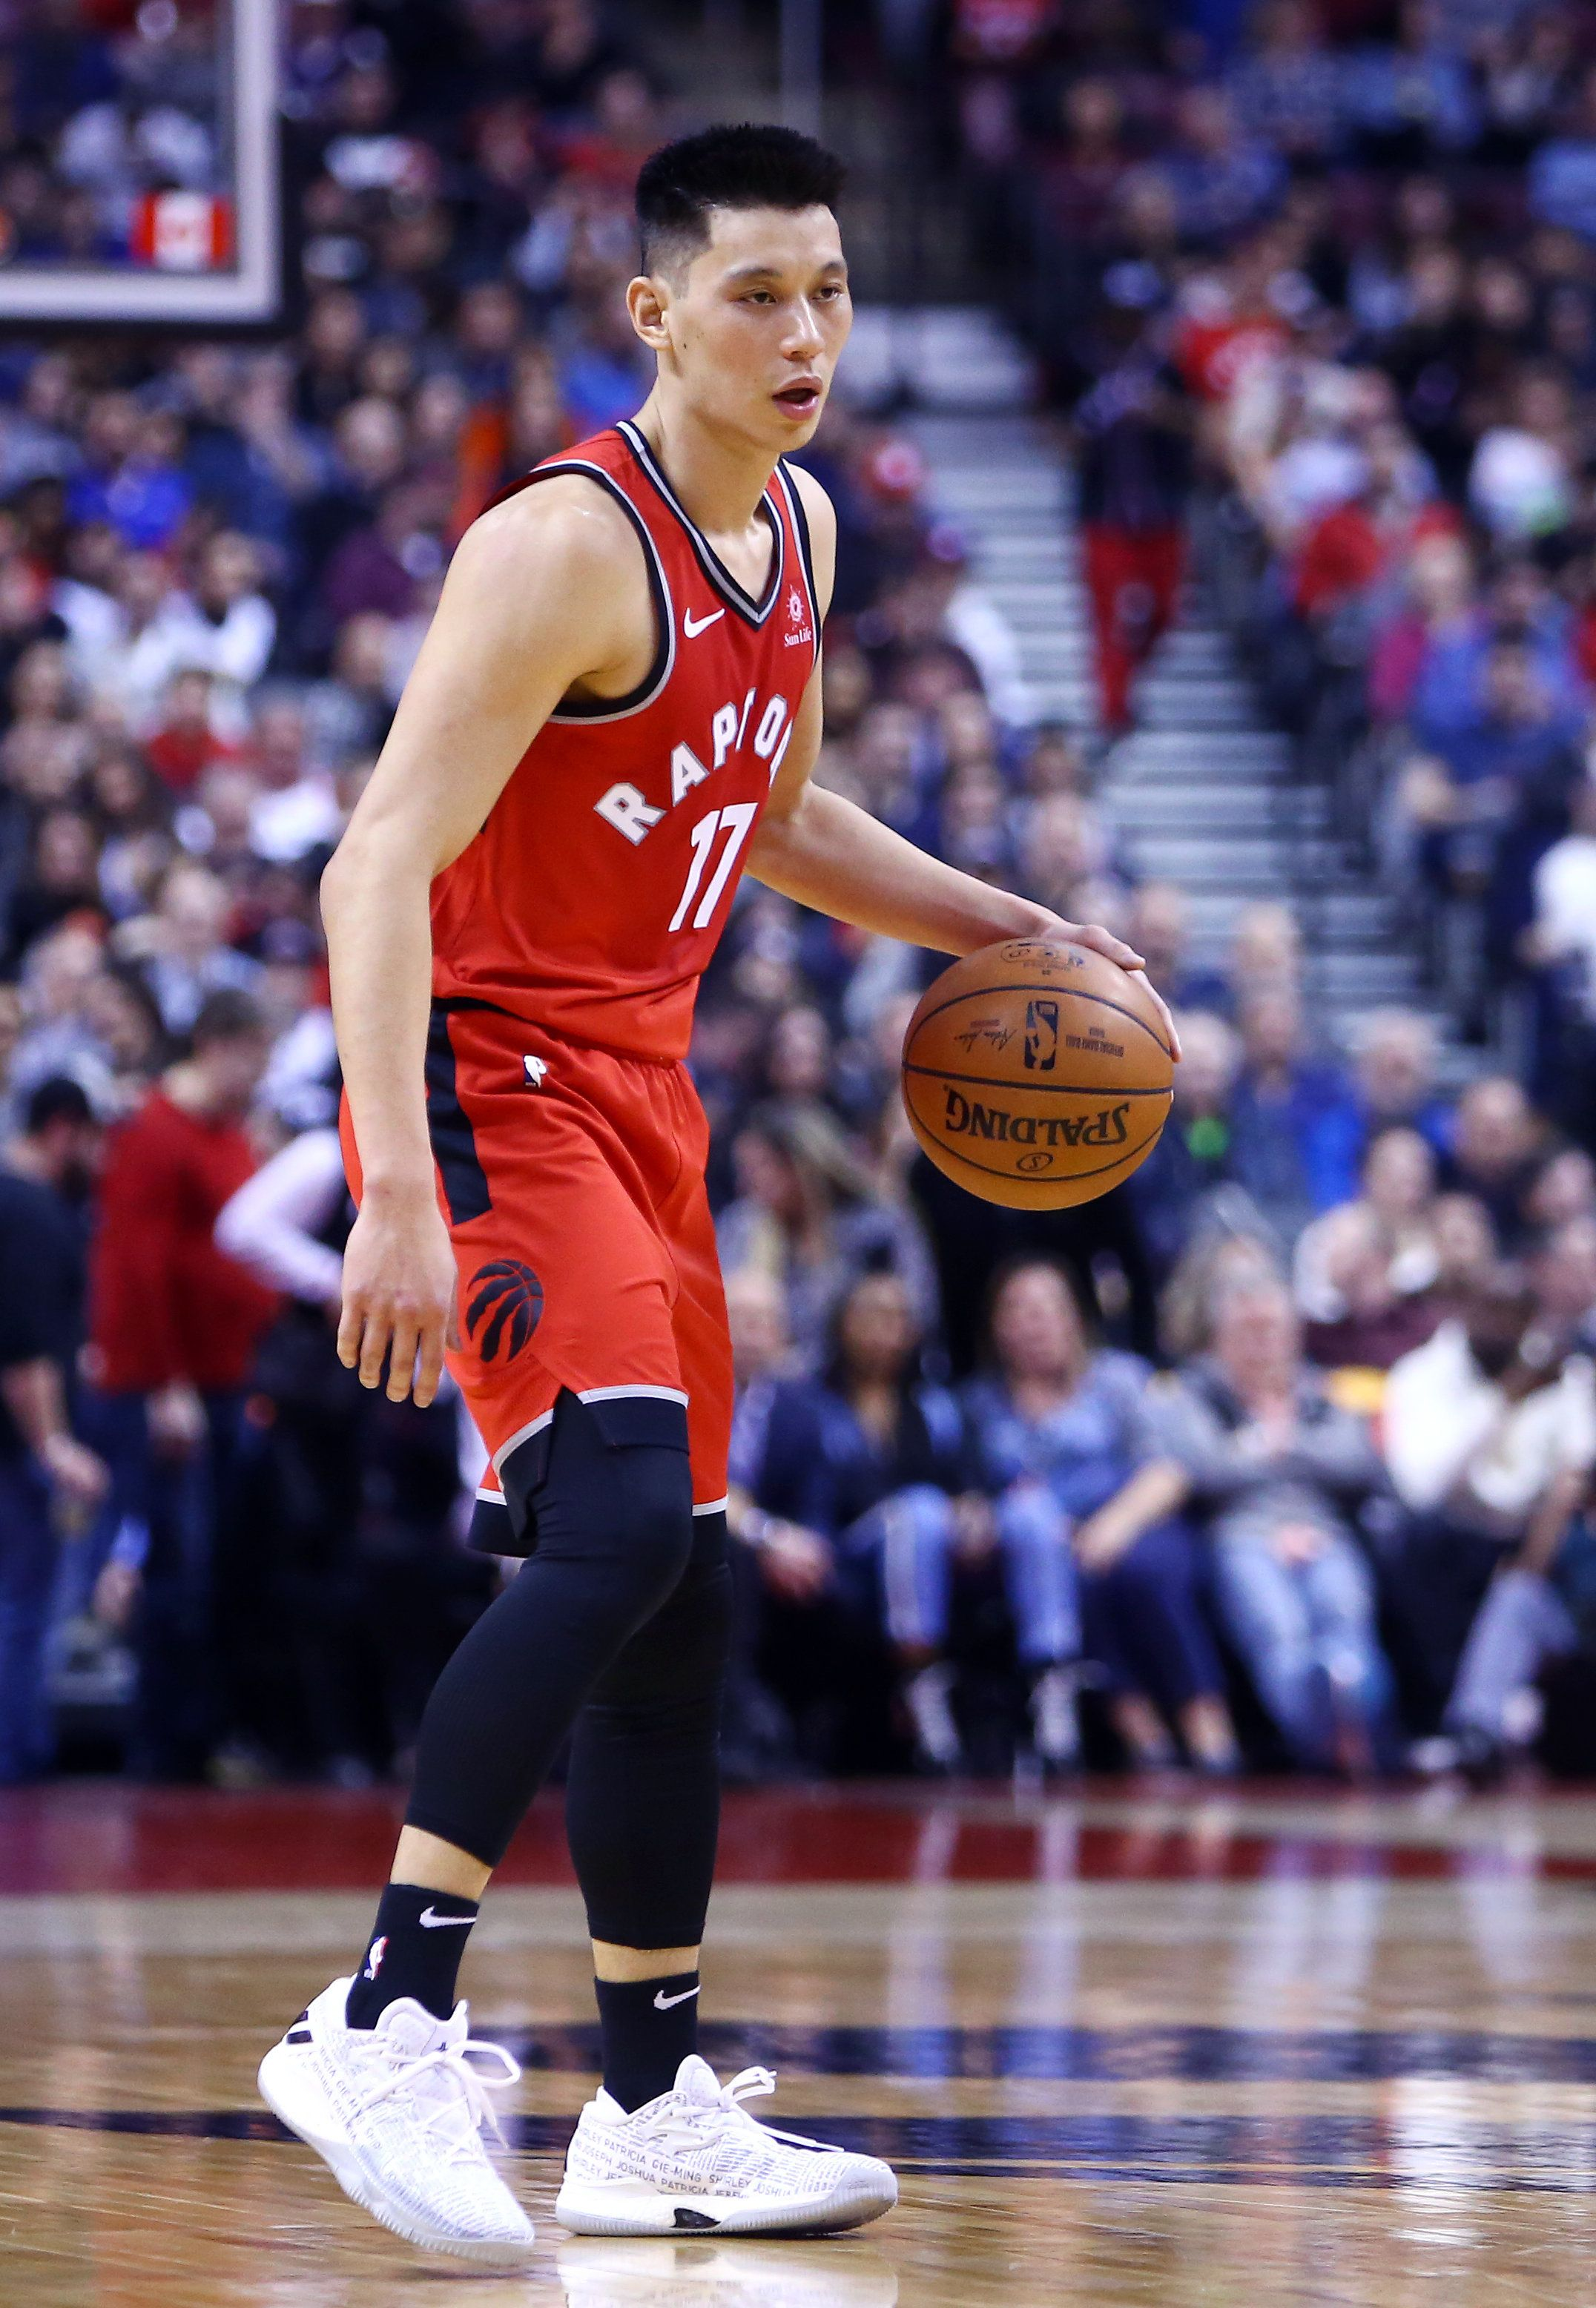 TORONTO, ON - FEBRUARY 13:  Jeremy Lin #17 of the Toronto Raptors dribbles the ball during the second half of an NBA game against the Washington Wizards at Scotiabank Arena on February 13, 2019 in Toronto, Canada.  NOTE TO USER: User expressly acknowledges and agrees that, by downloading and or using this photograph, User is consenting to the terms and conditions of the Getty Images License Agreement.  (Photo by Vaughn Ridley/Getty Images)